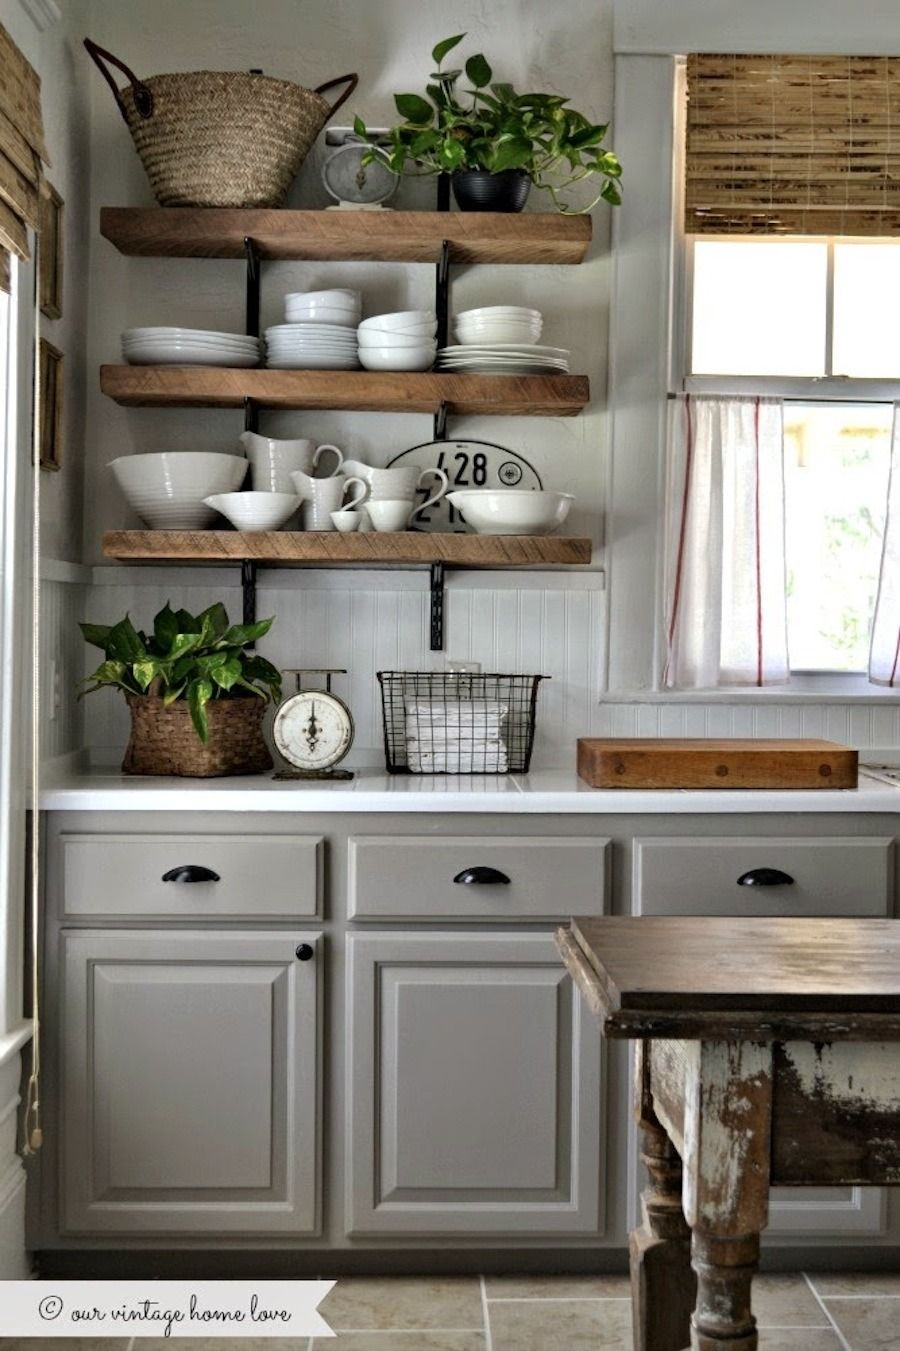 2 country kitchen design ideas Rustic Country Kitchen Decorations Distinguish a Unified Design